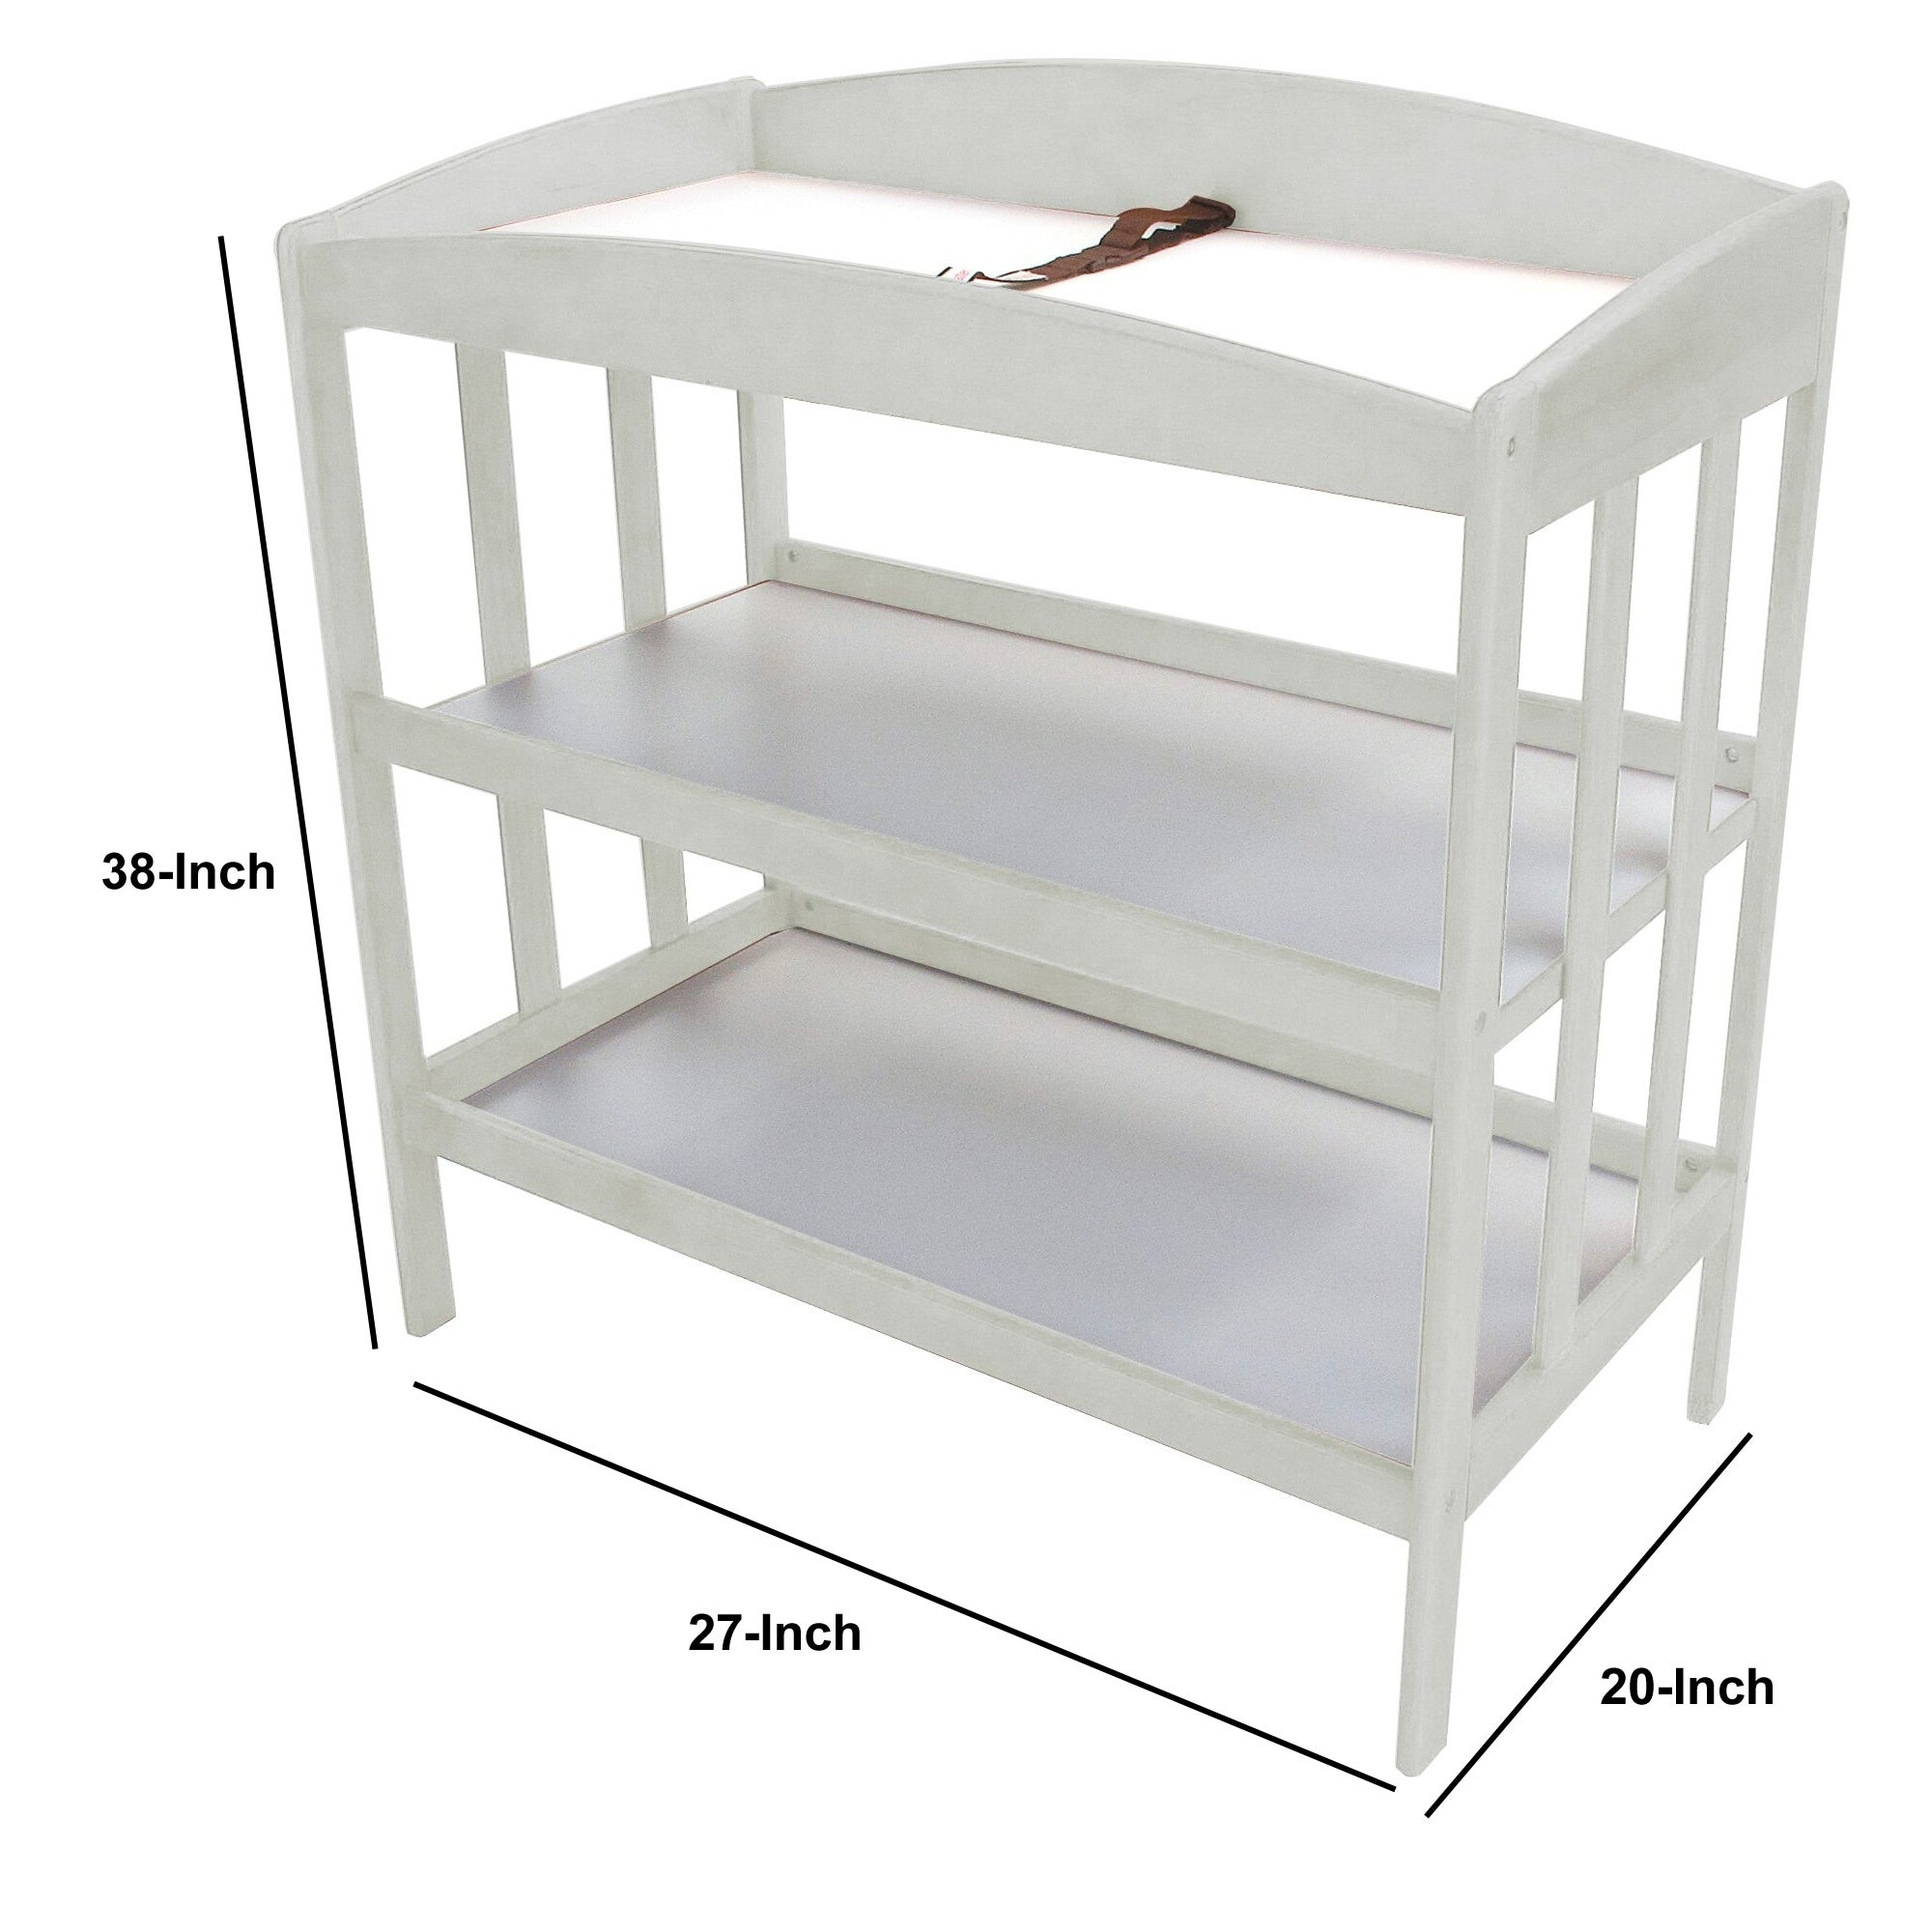 Wooden Changing Table With 2 Shelves And Slatted Sides White